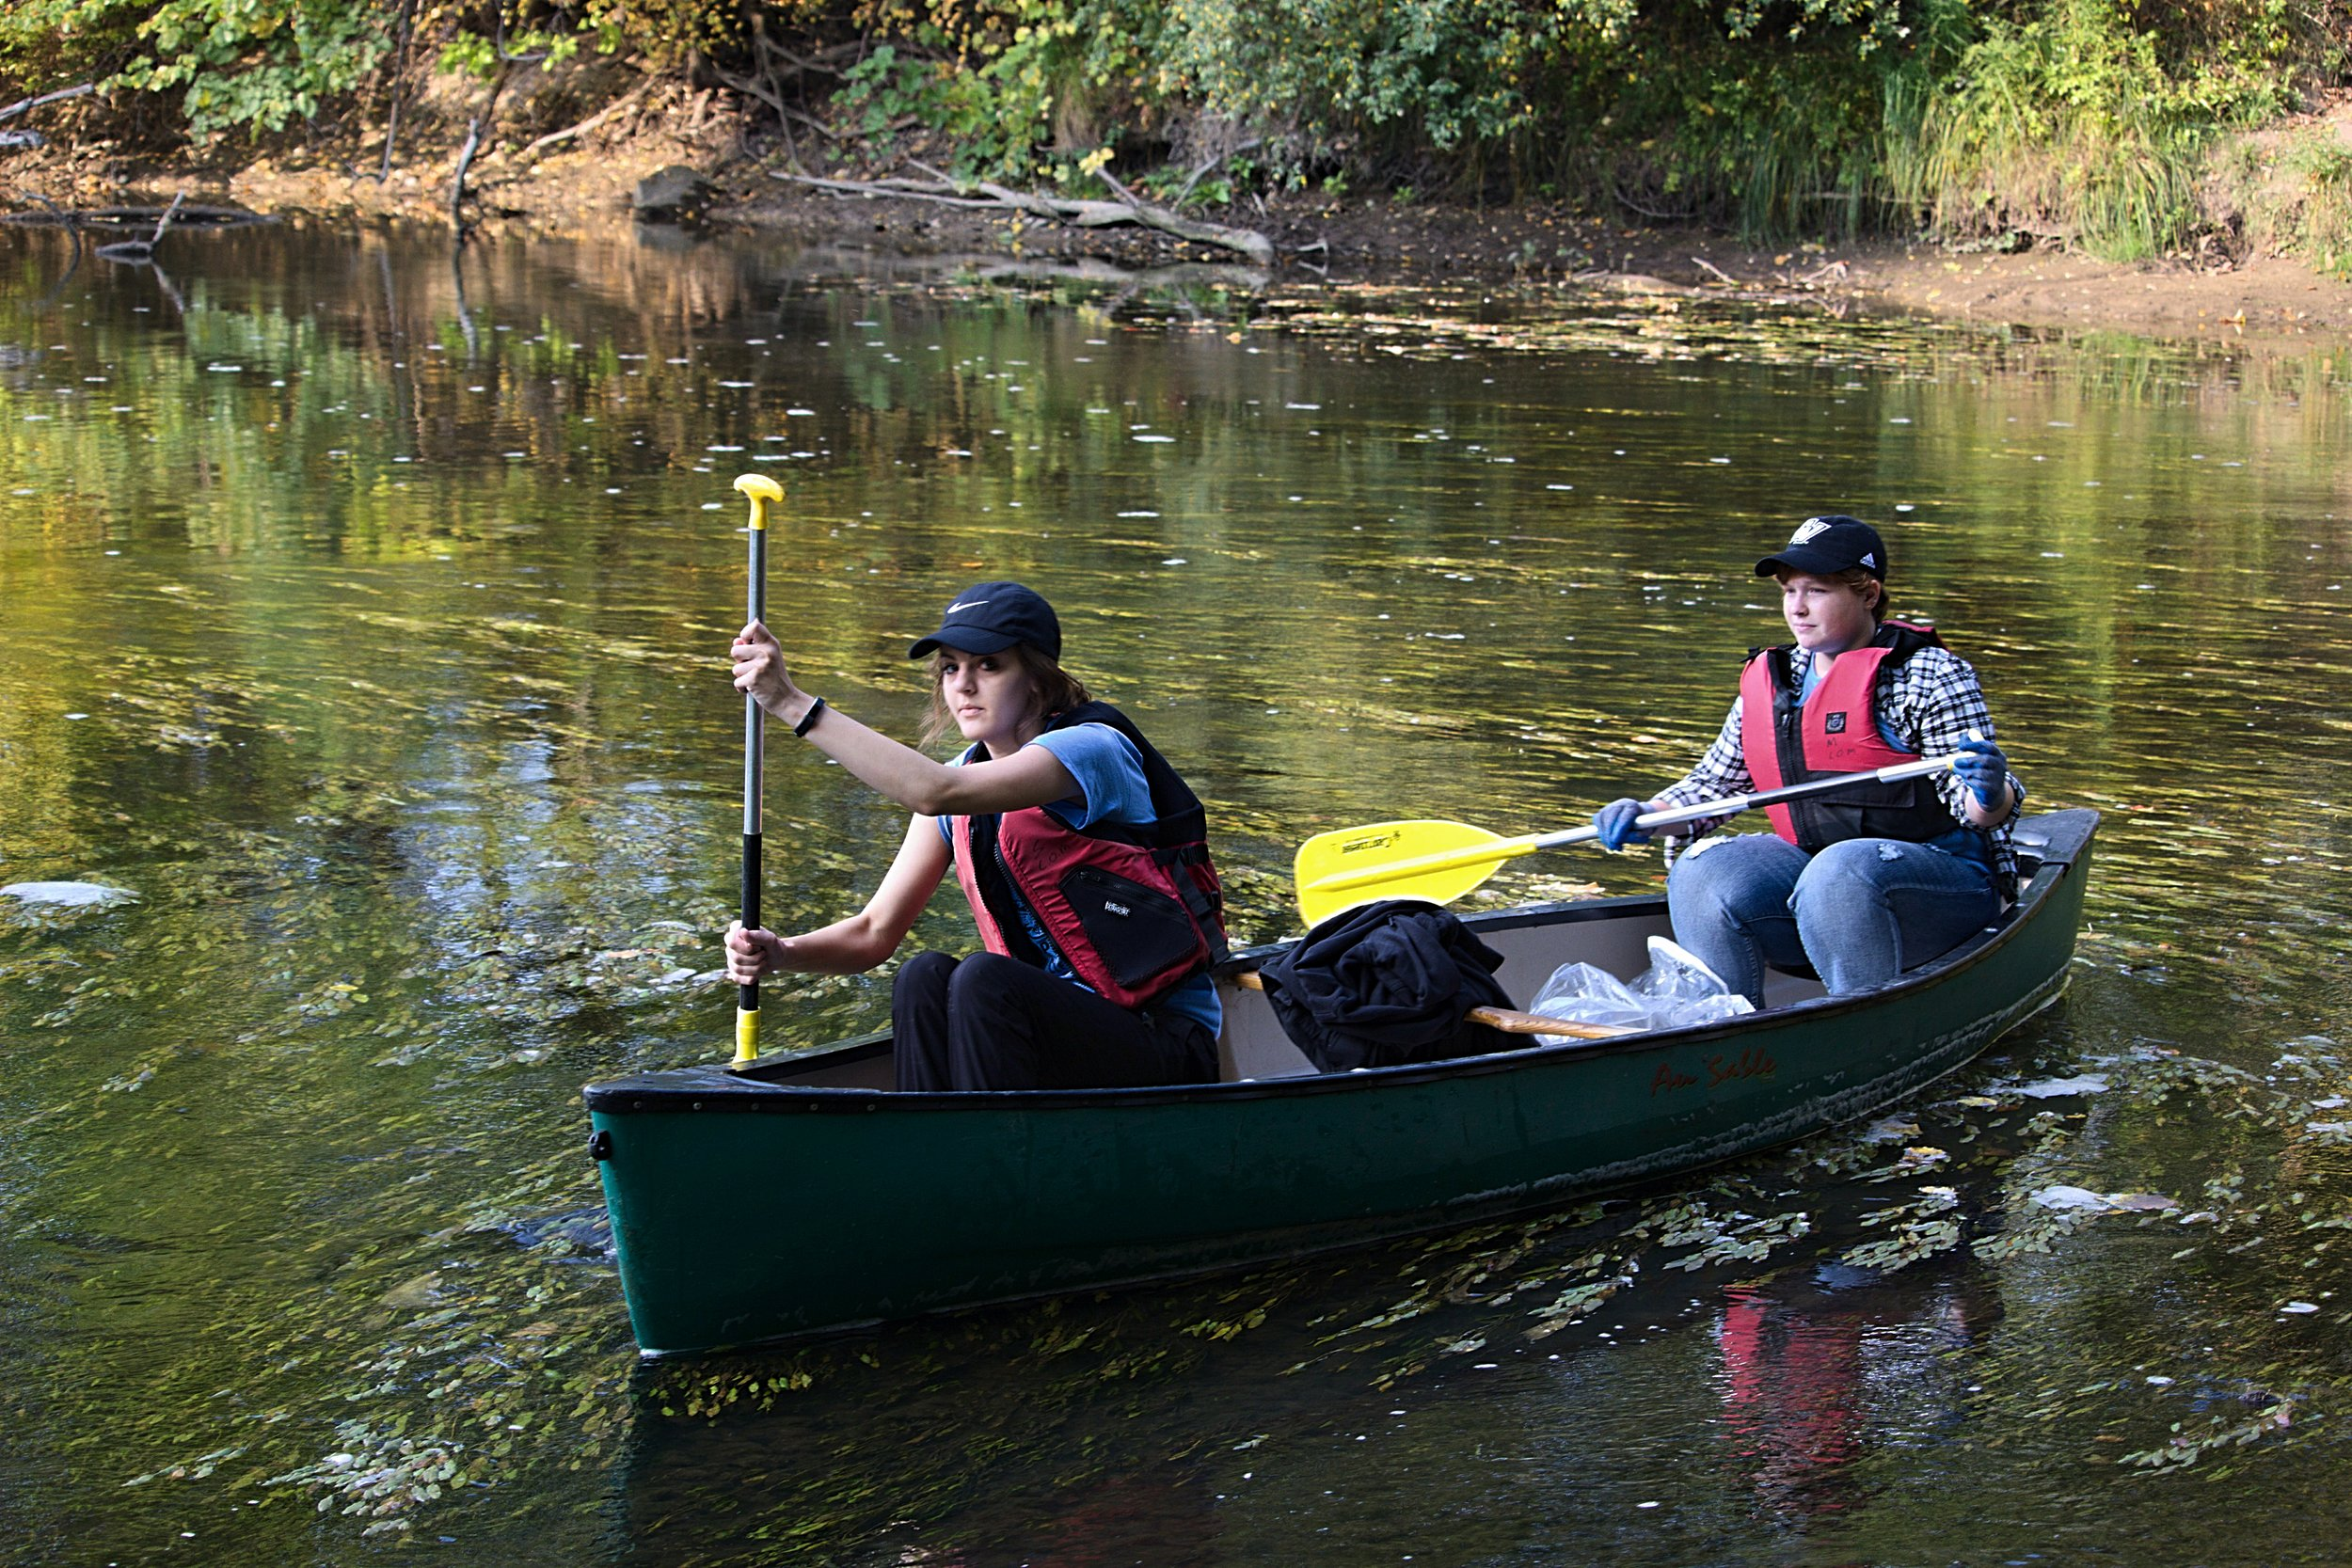 Sydney Kamaloski(right) and Alainna O'Neill led the group. Because of the low level of the river, the canoes would run aground on the rocky bottom of the river frequently. You can see Kamaloski planting the paddle in the river bottom to drag the canoe along.